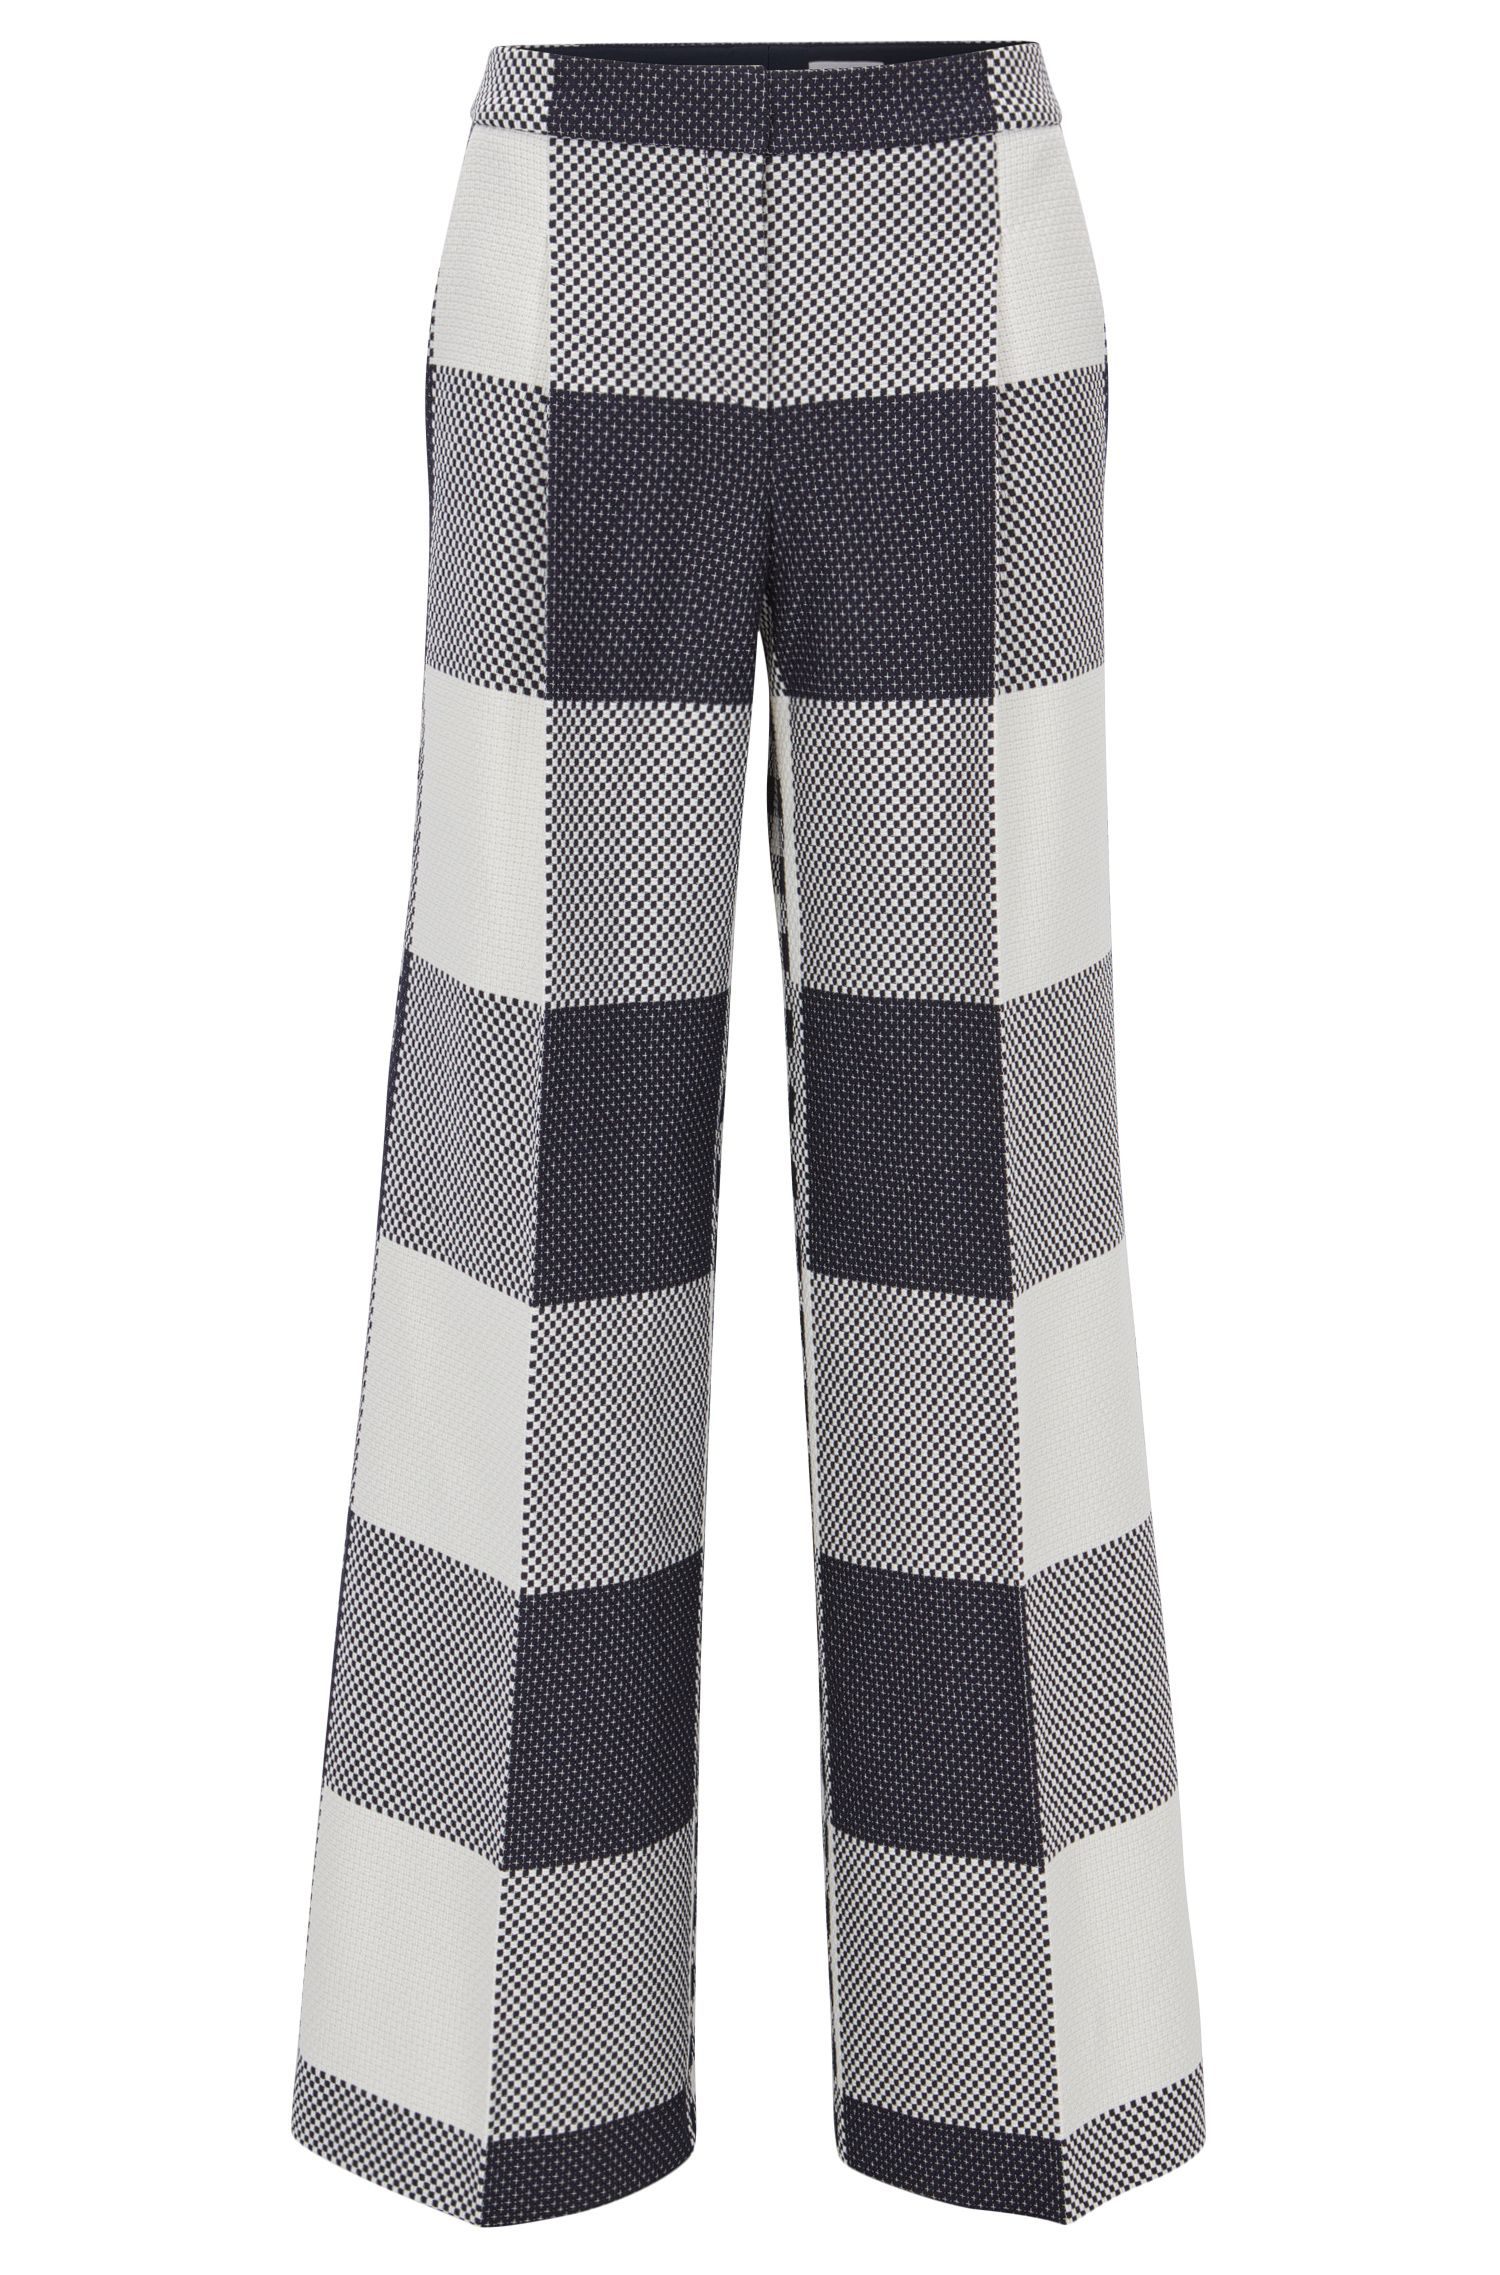 Pantaloni relaxed fit a gamba larga in cotone